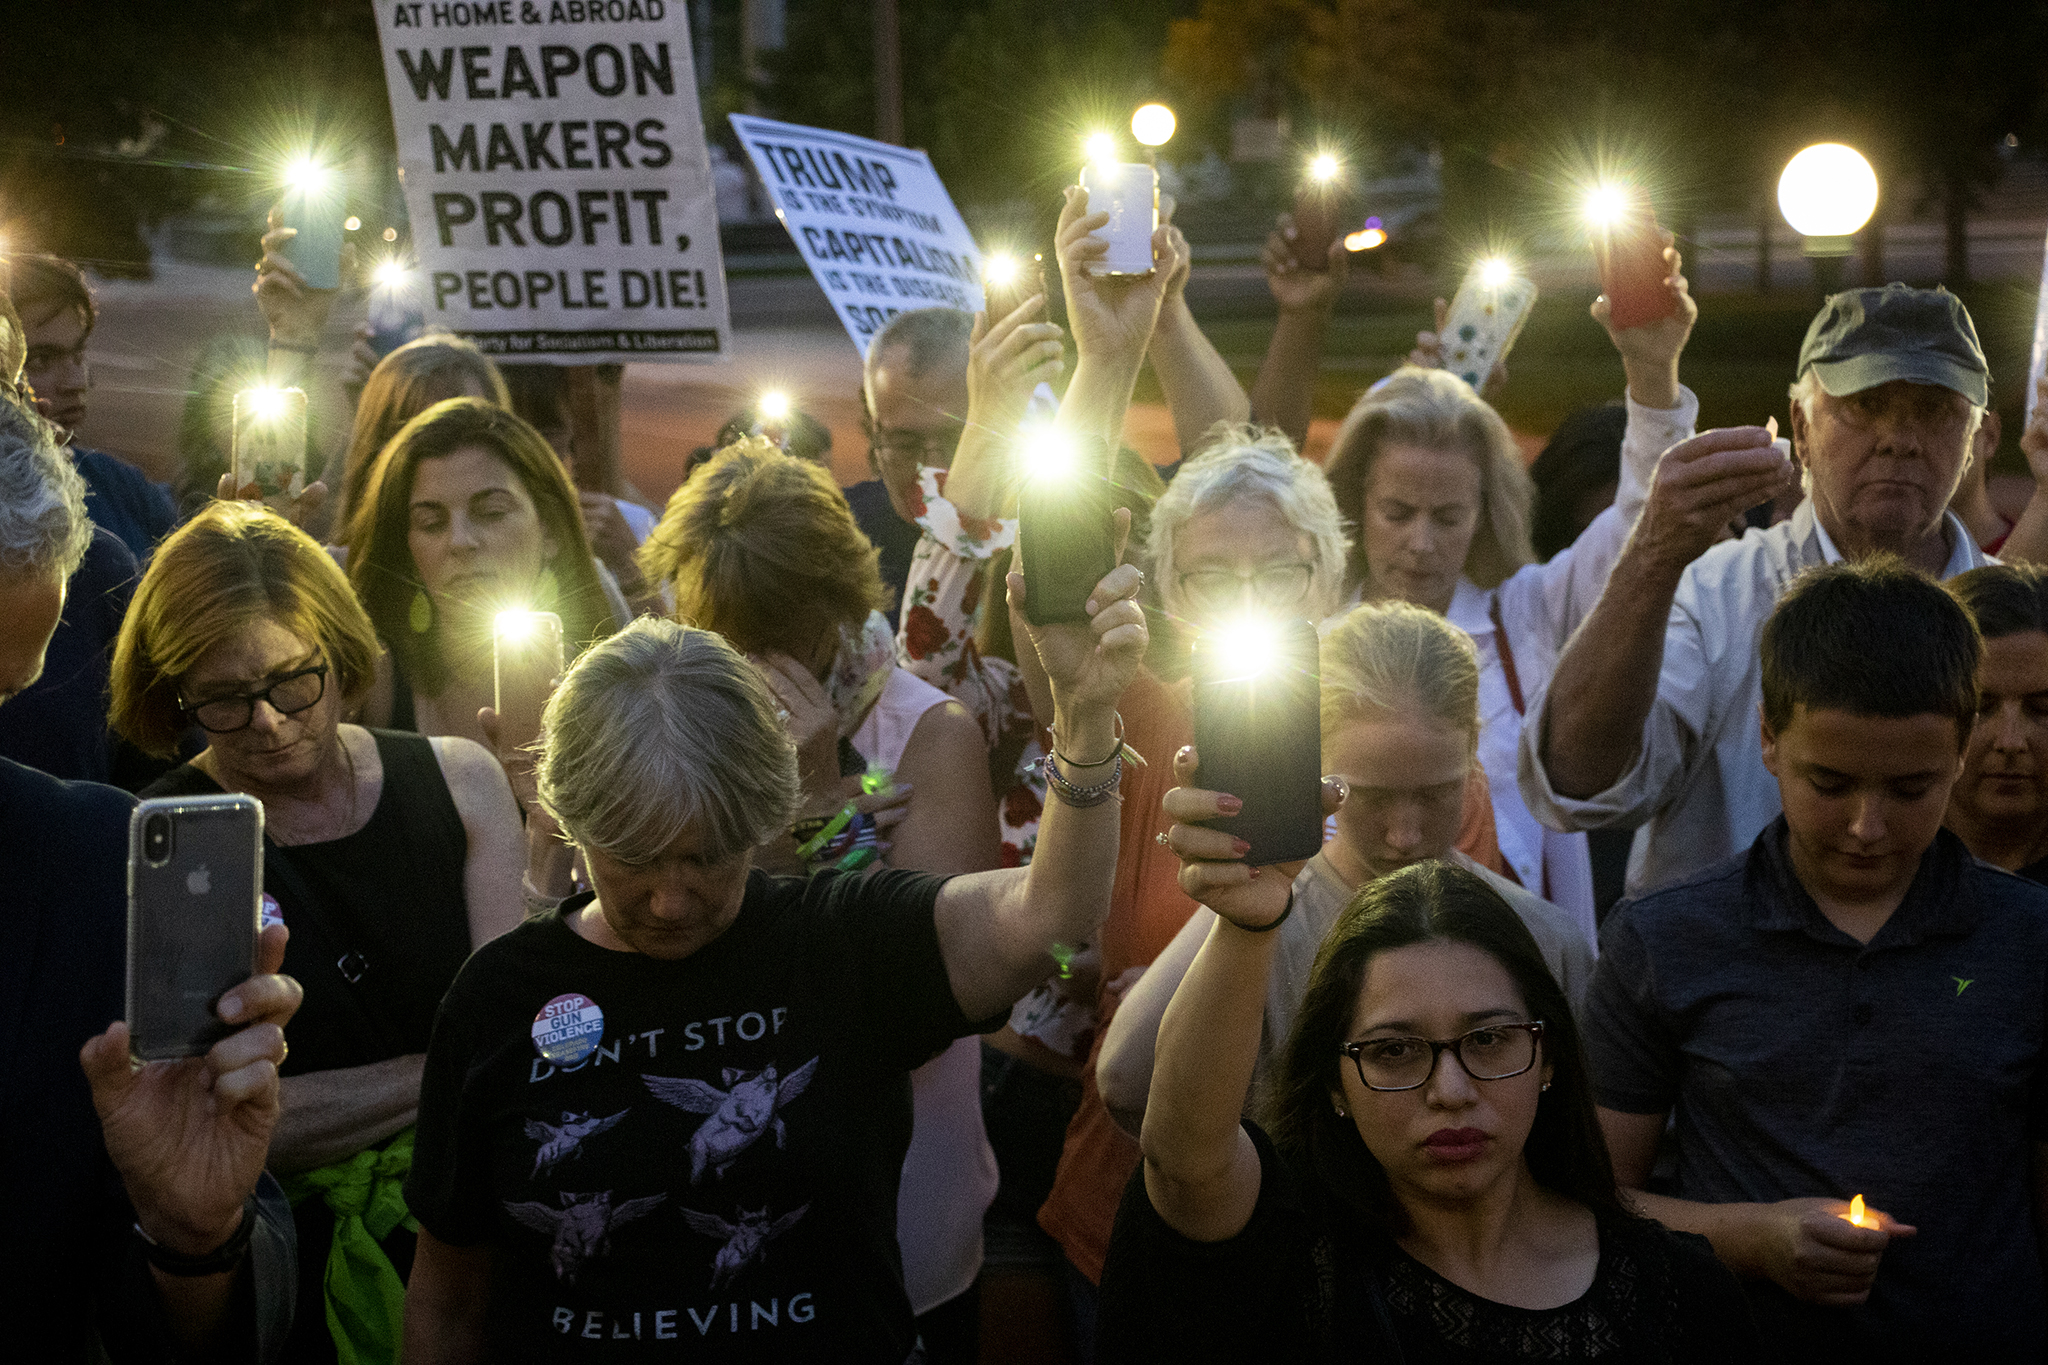 People hold up camera lights as candles during a vigil for victims of gun violence on the Capitol steps, Aug. 4, 2019.